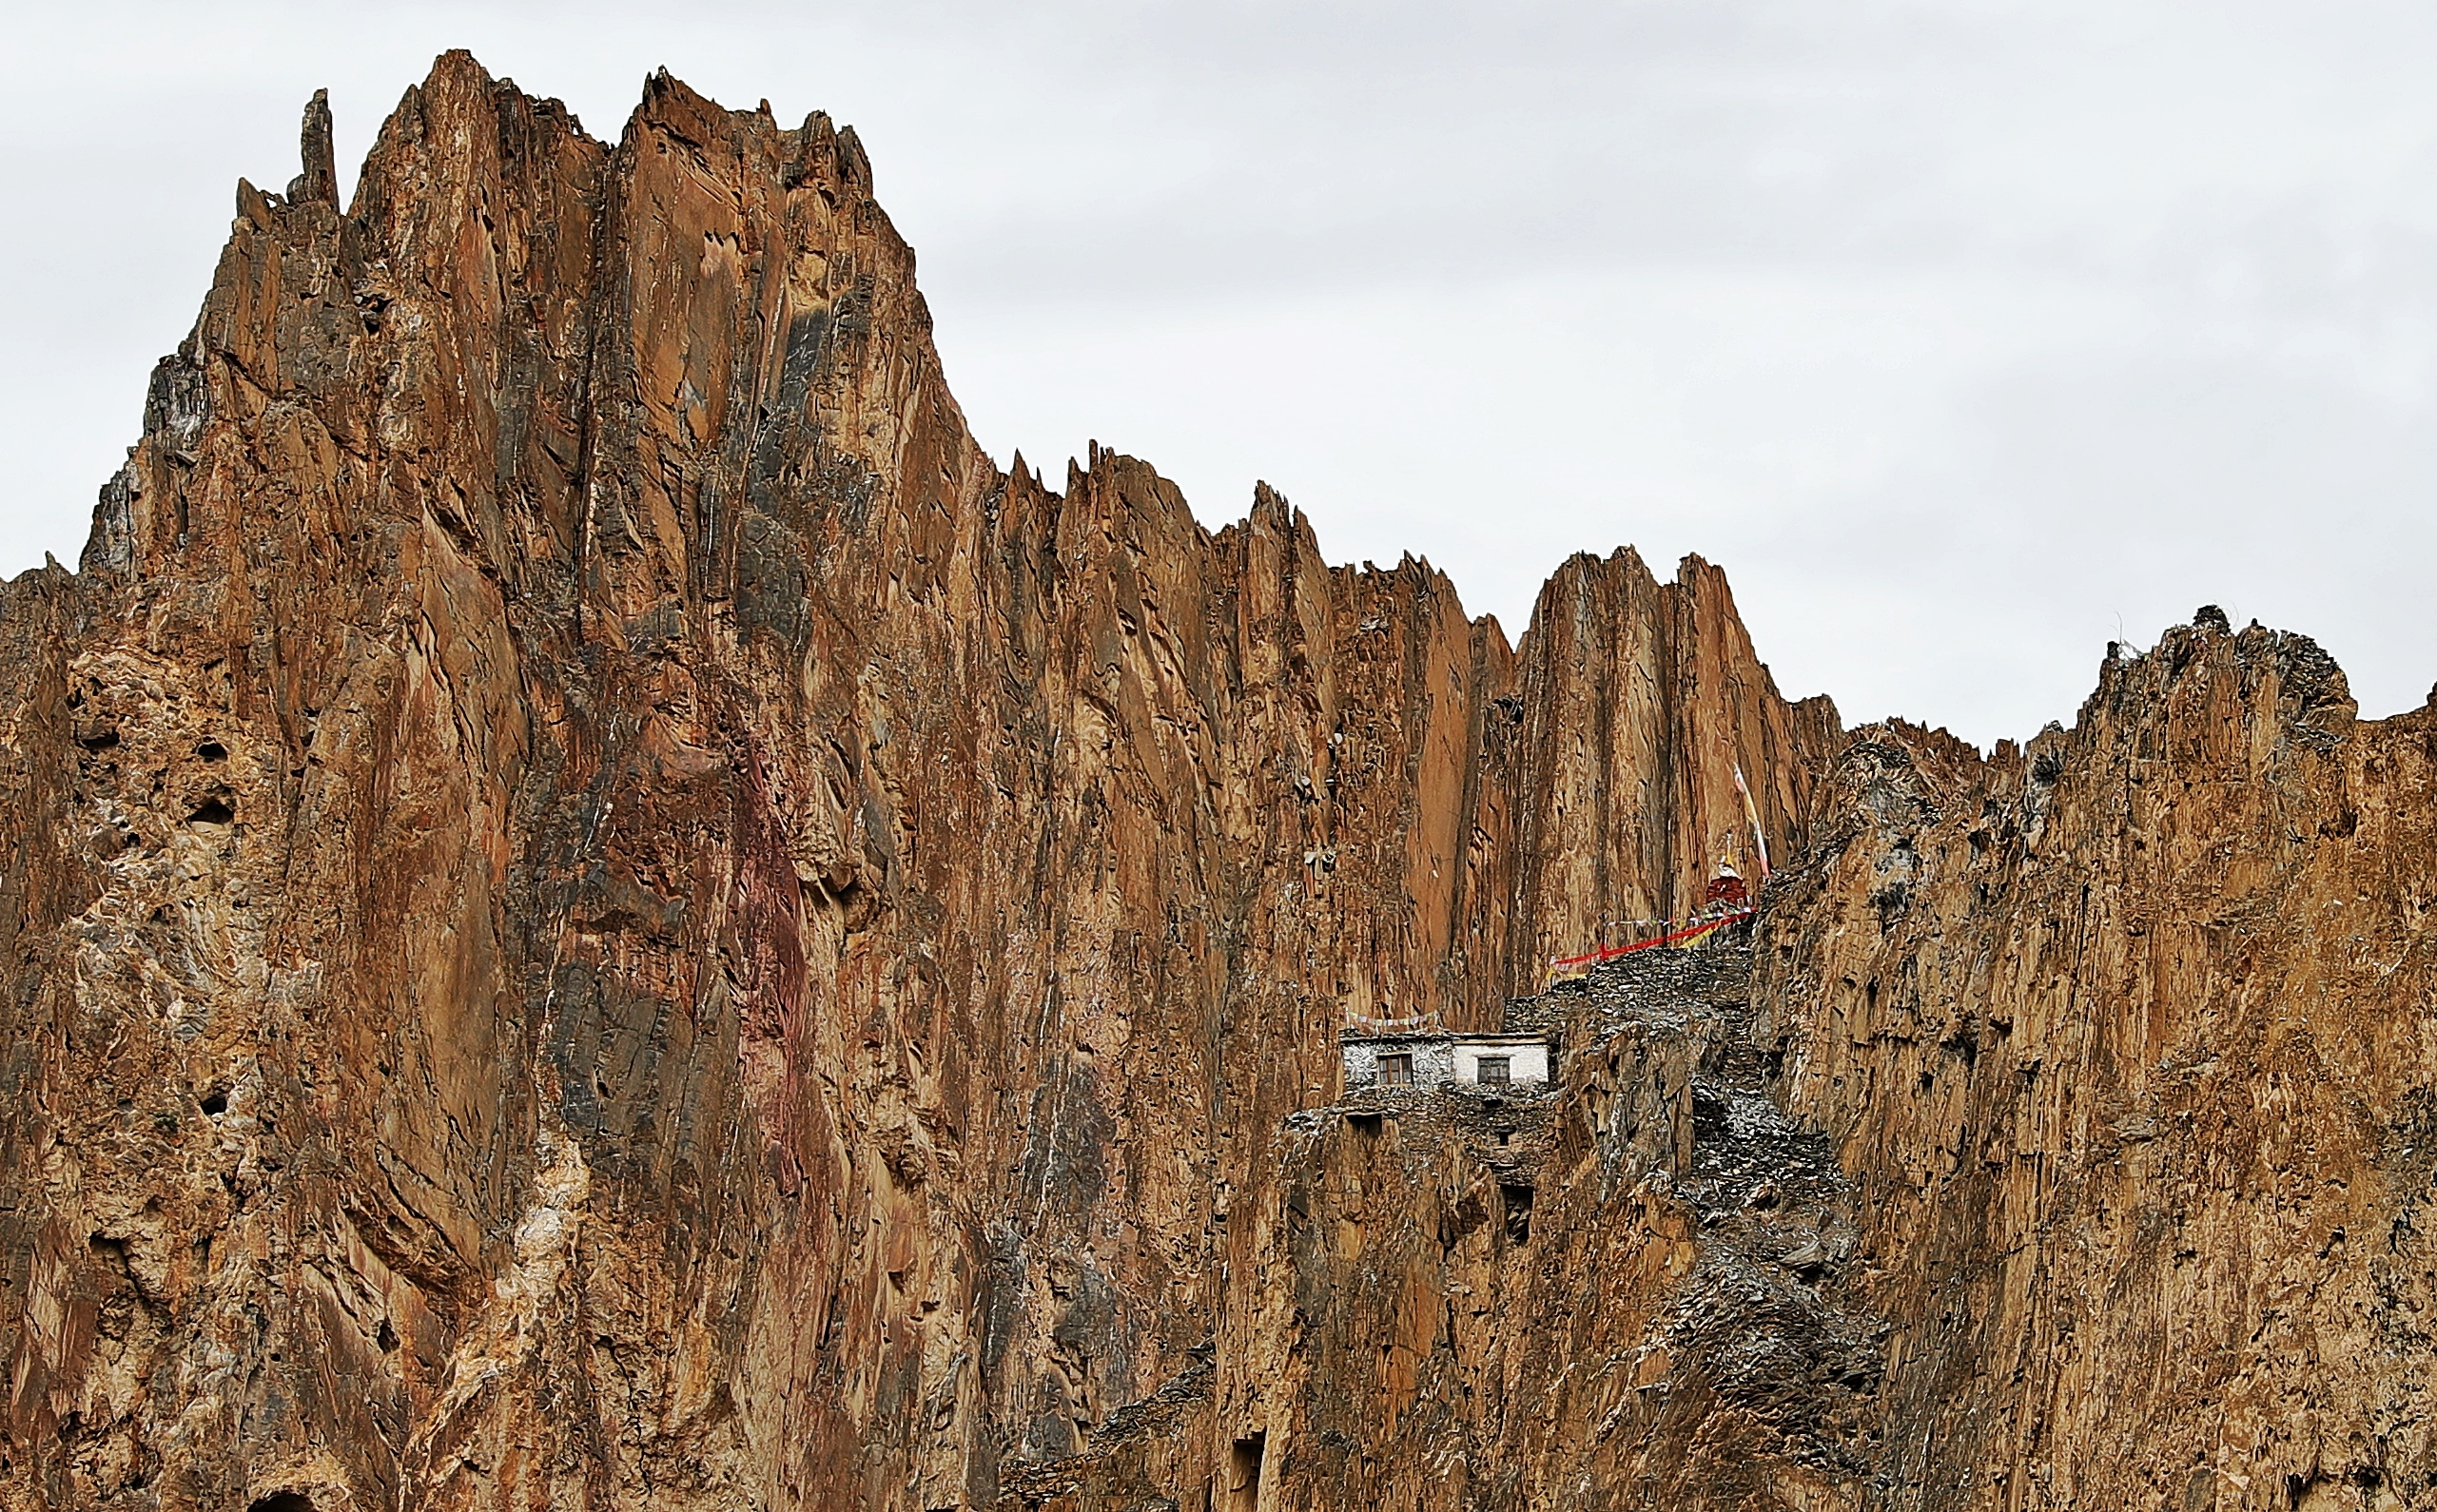 Tacha Gompa up high on a small cliff